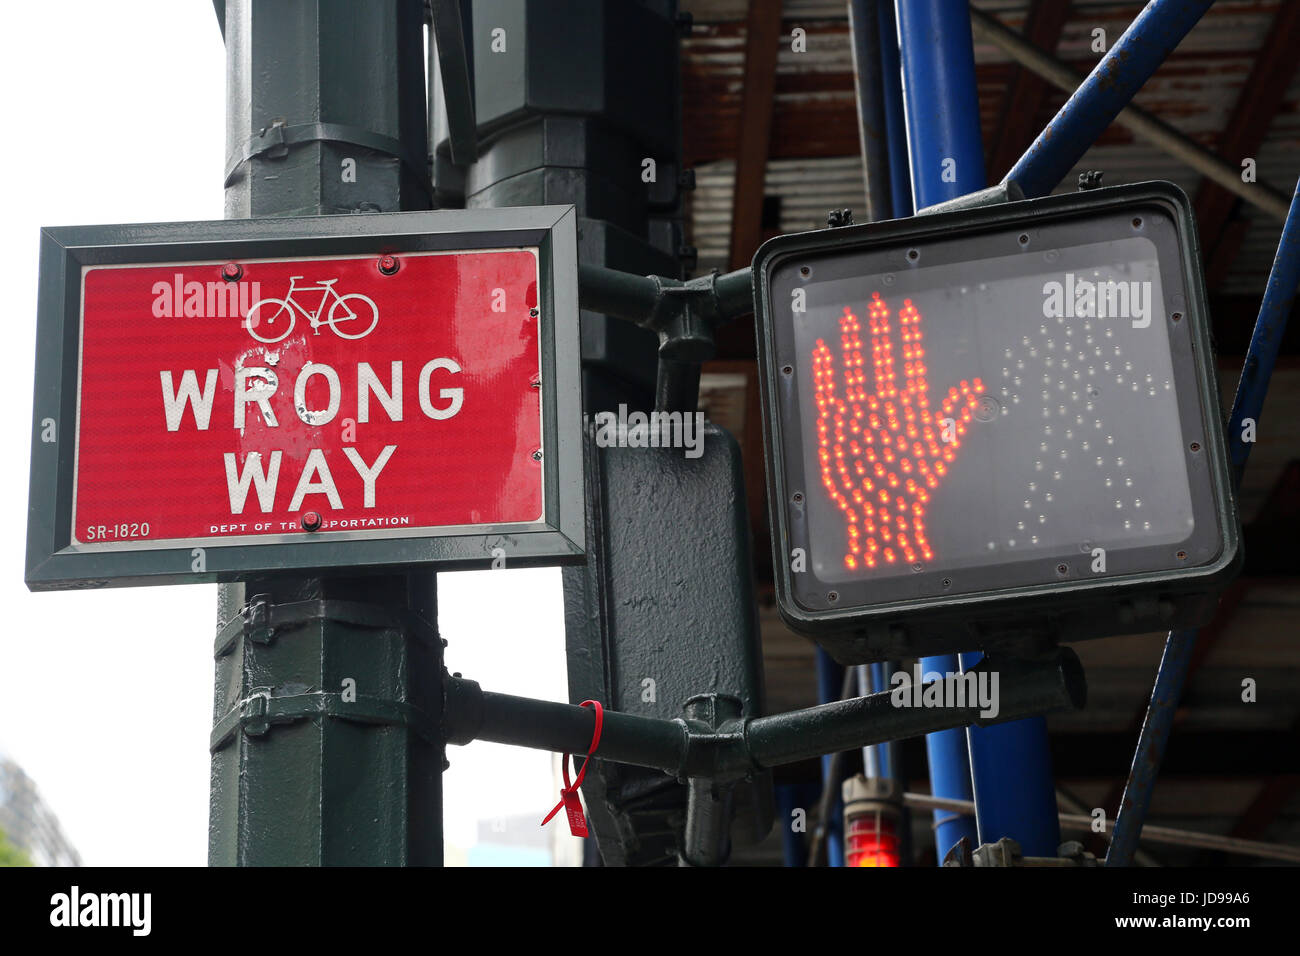 Red don't walk street sign and wrong way sign, New York City, New York, USA - Stock Image